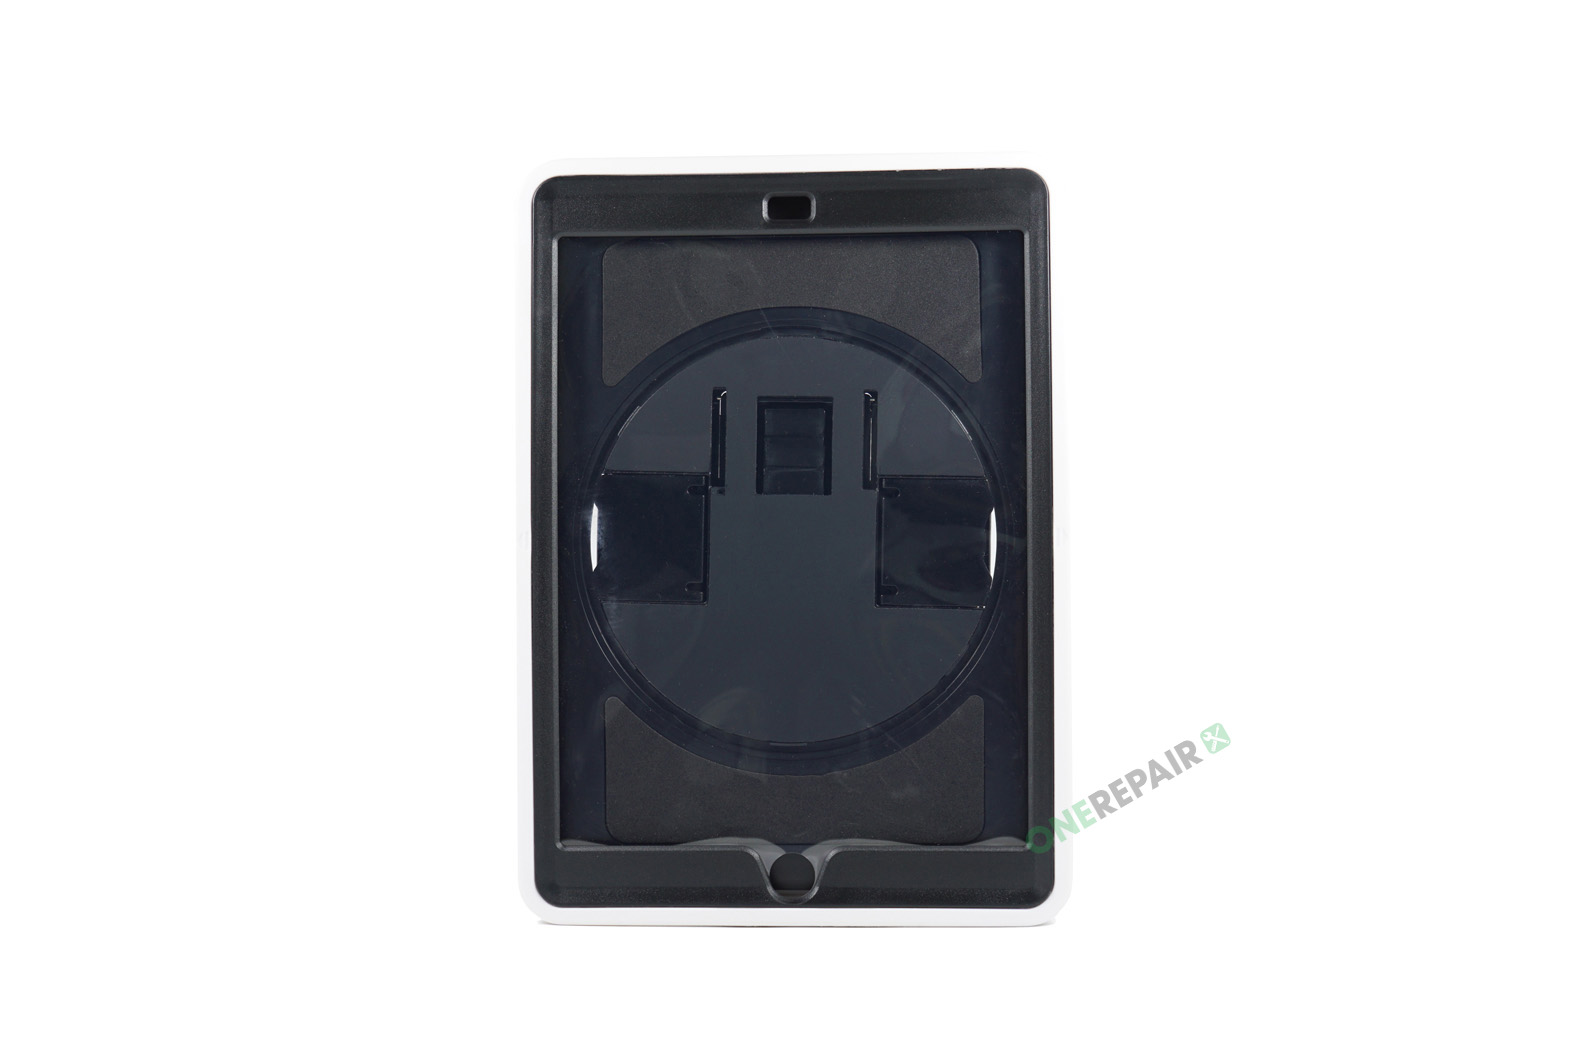 351070_iPad_Air2_2_A1566_A1567_3-in-1_Thin_Boernecover_Børne_Hardcase_Cover_Hvid_Graa_OneRepair_00002